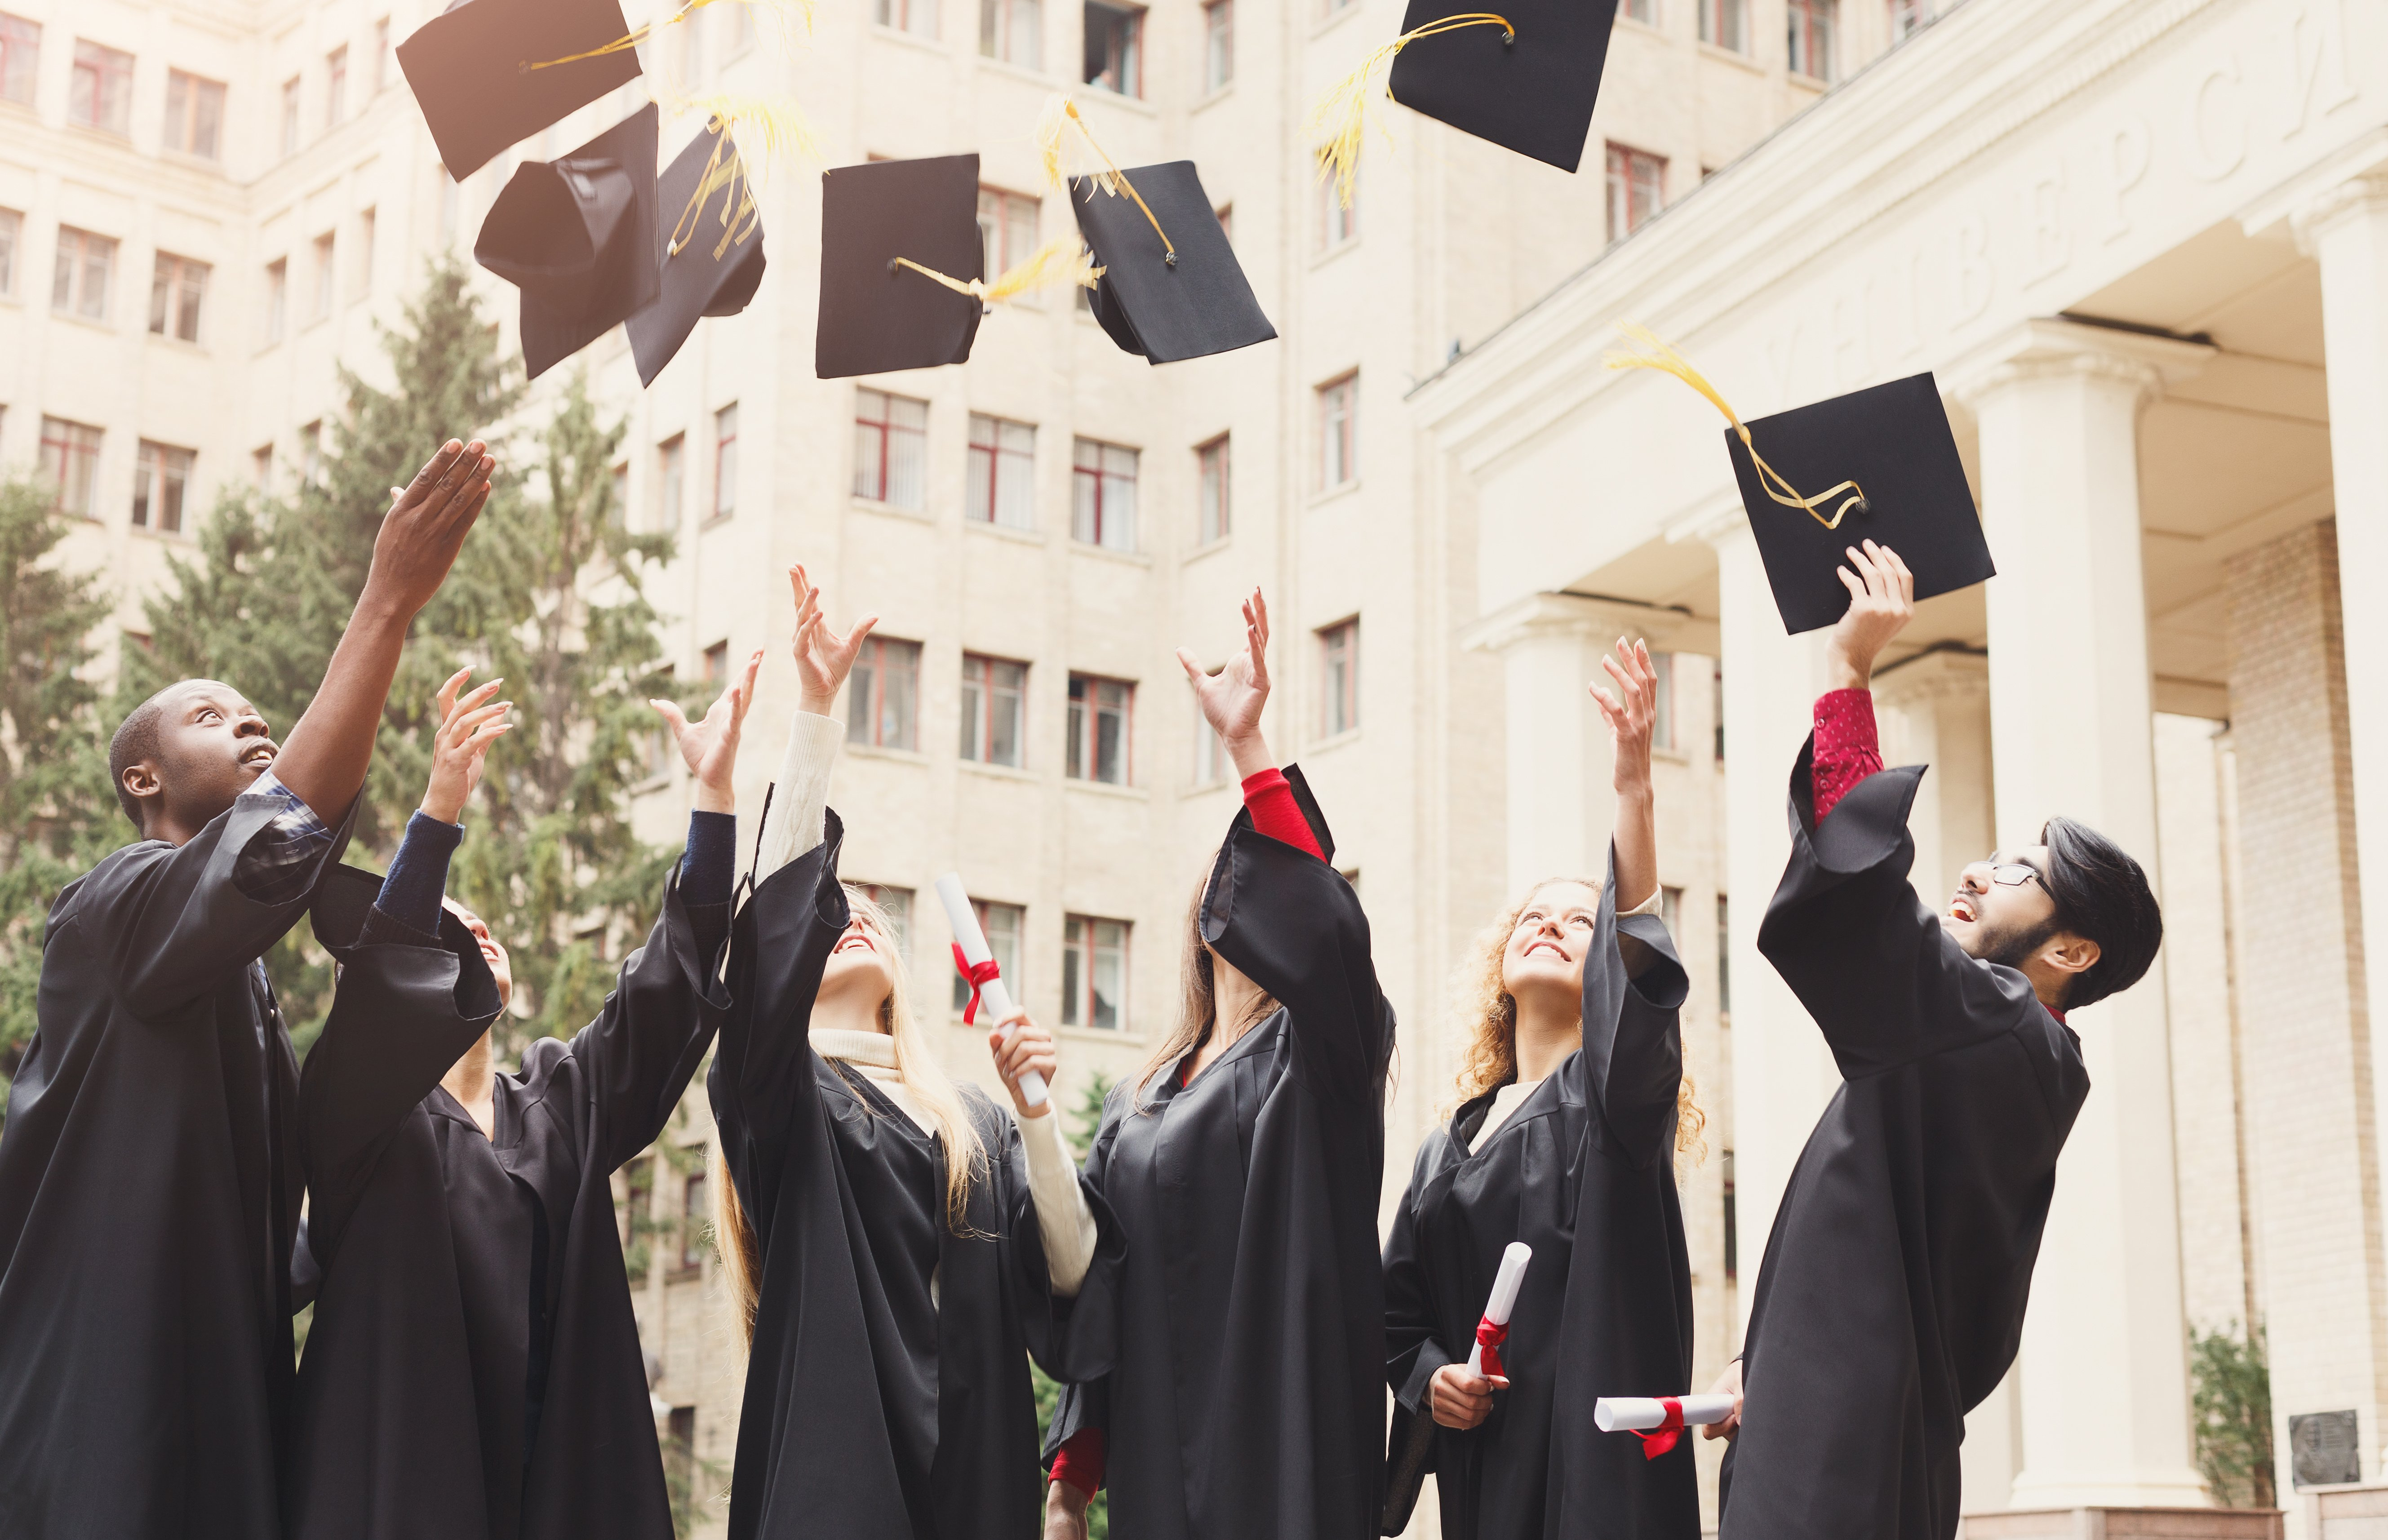 6 Colleges with Unique Graduation Traditions